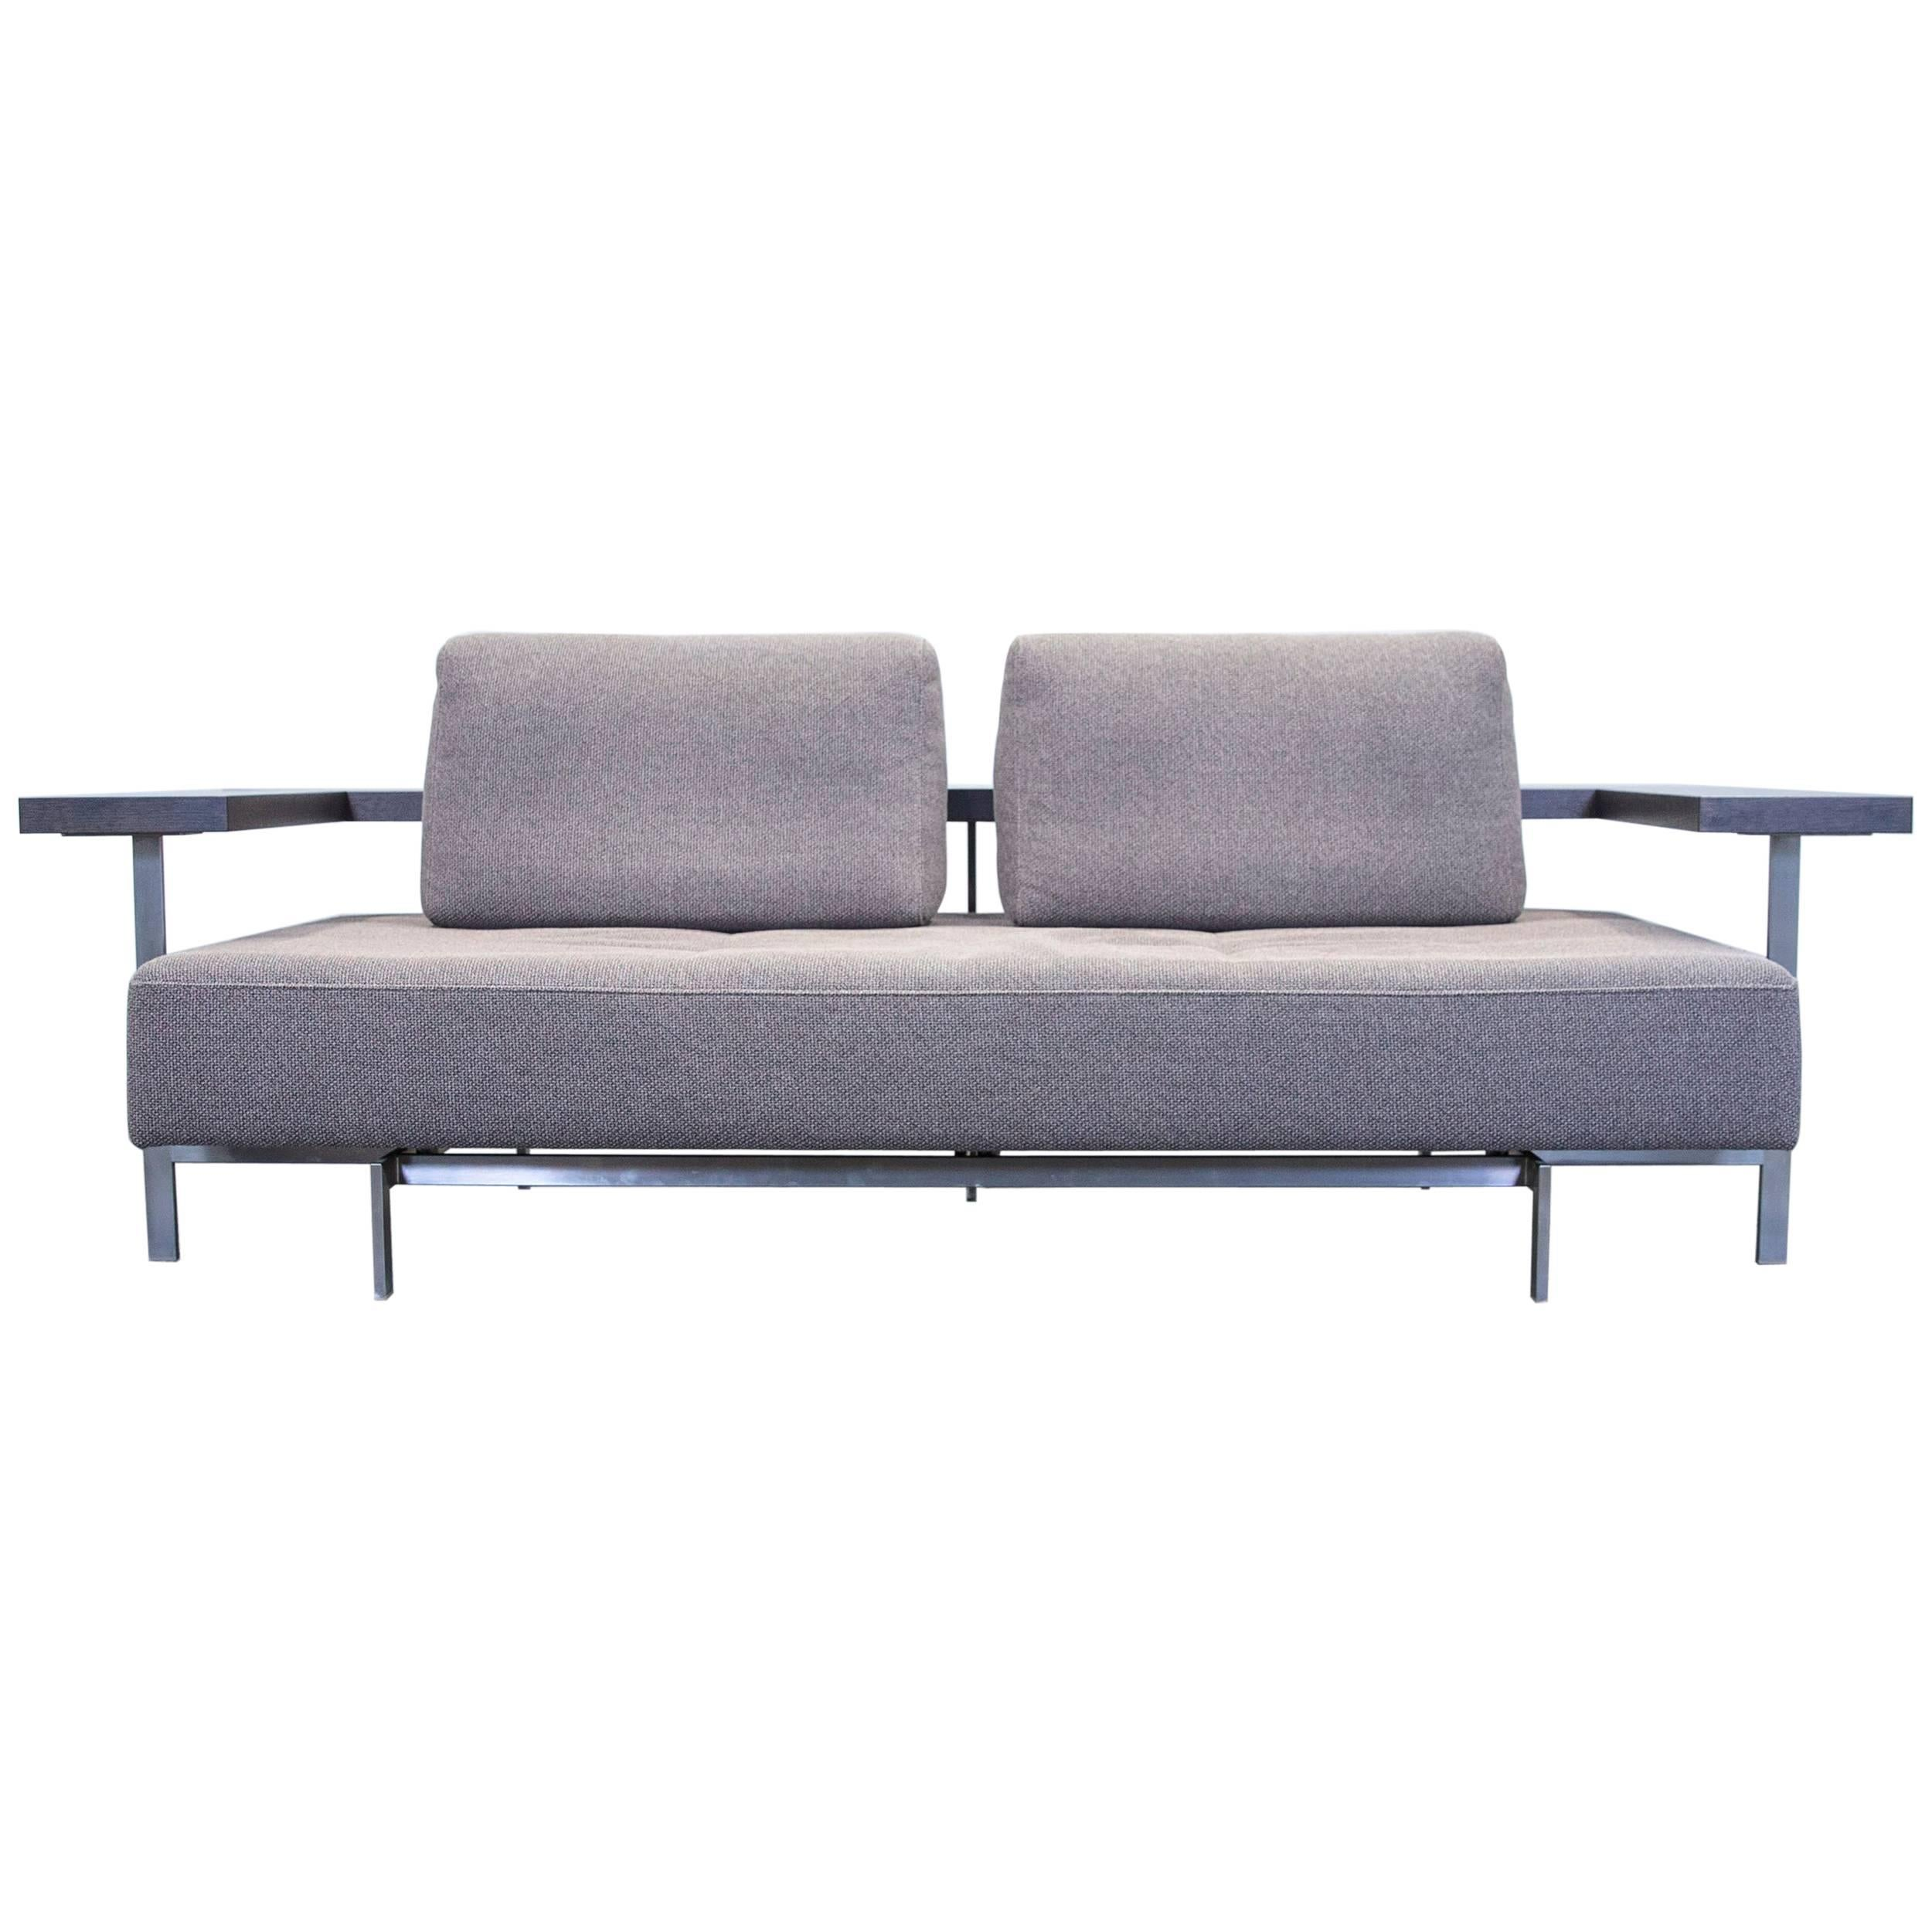 Rolf Benz Sofa Beautiful Rolf Benz Tira Form Follows